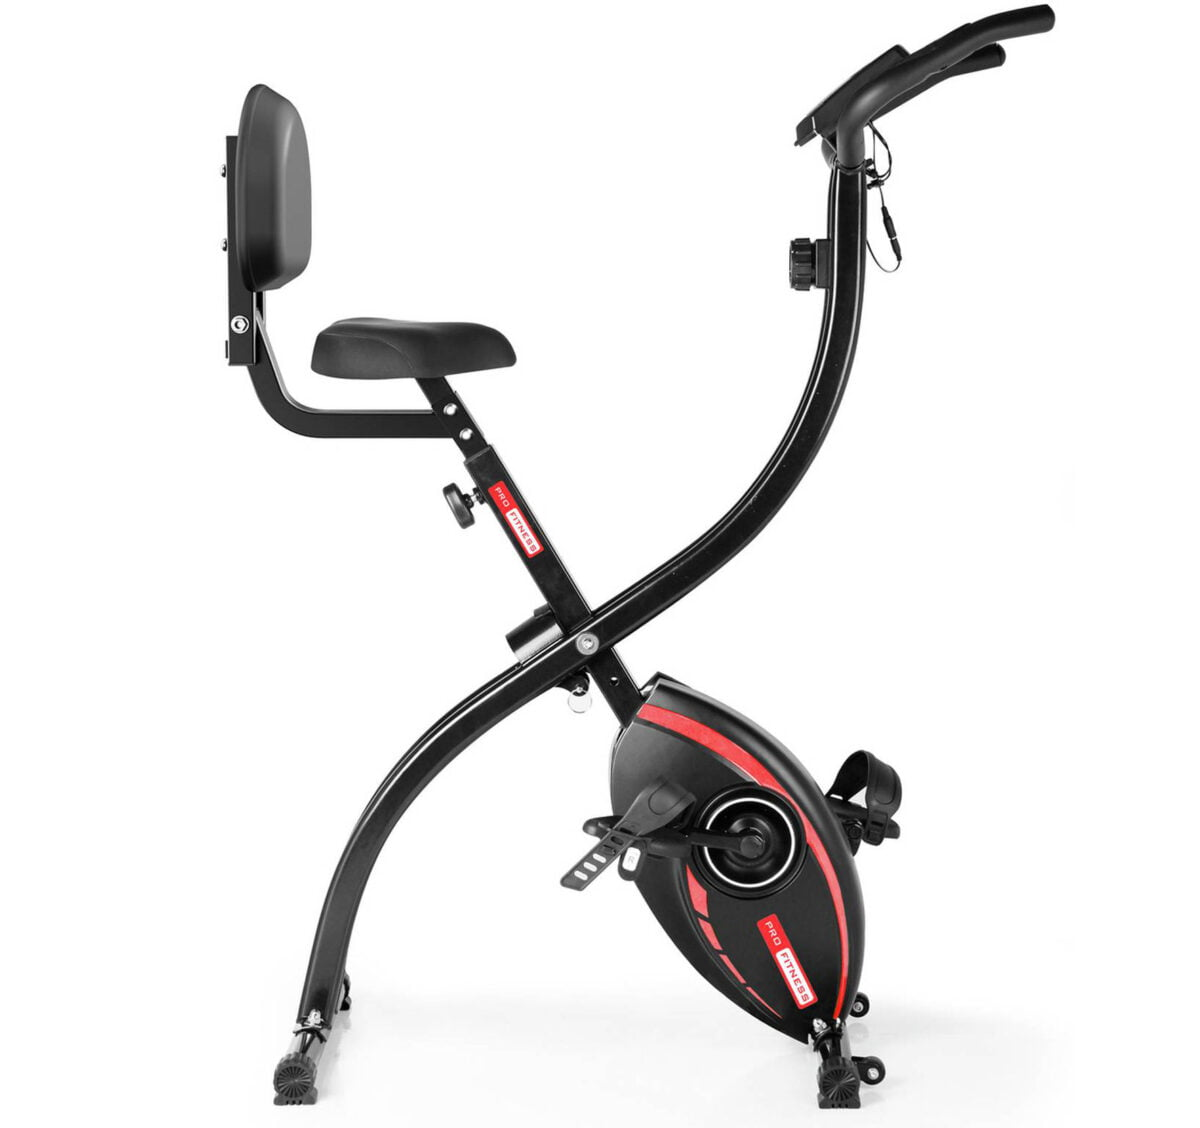 Black and Red Pro Fitness FEB2000 Folding Exercise Bike